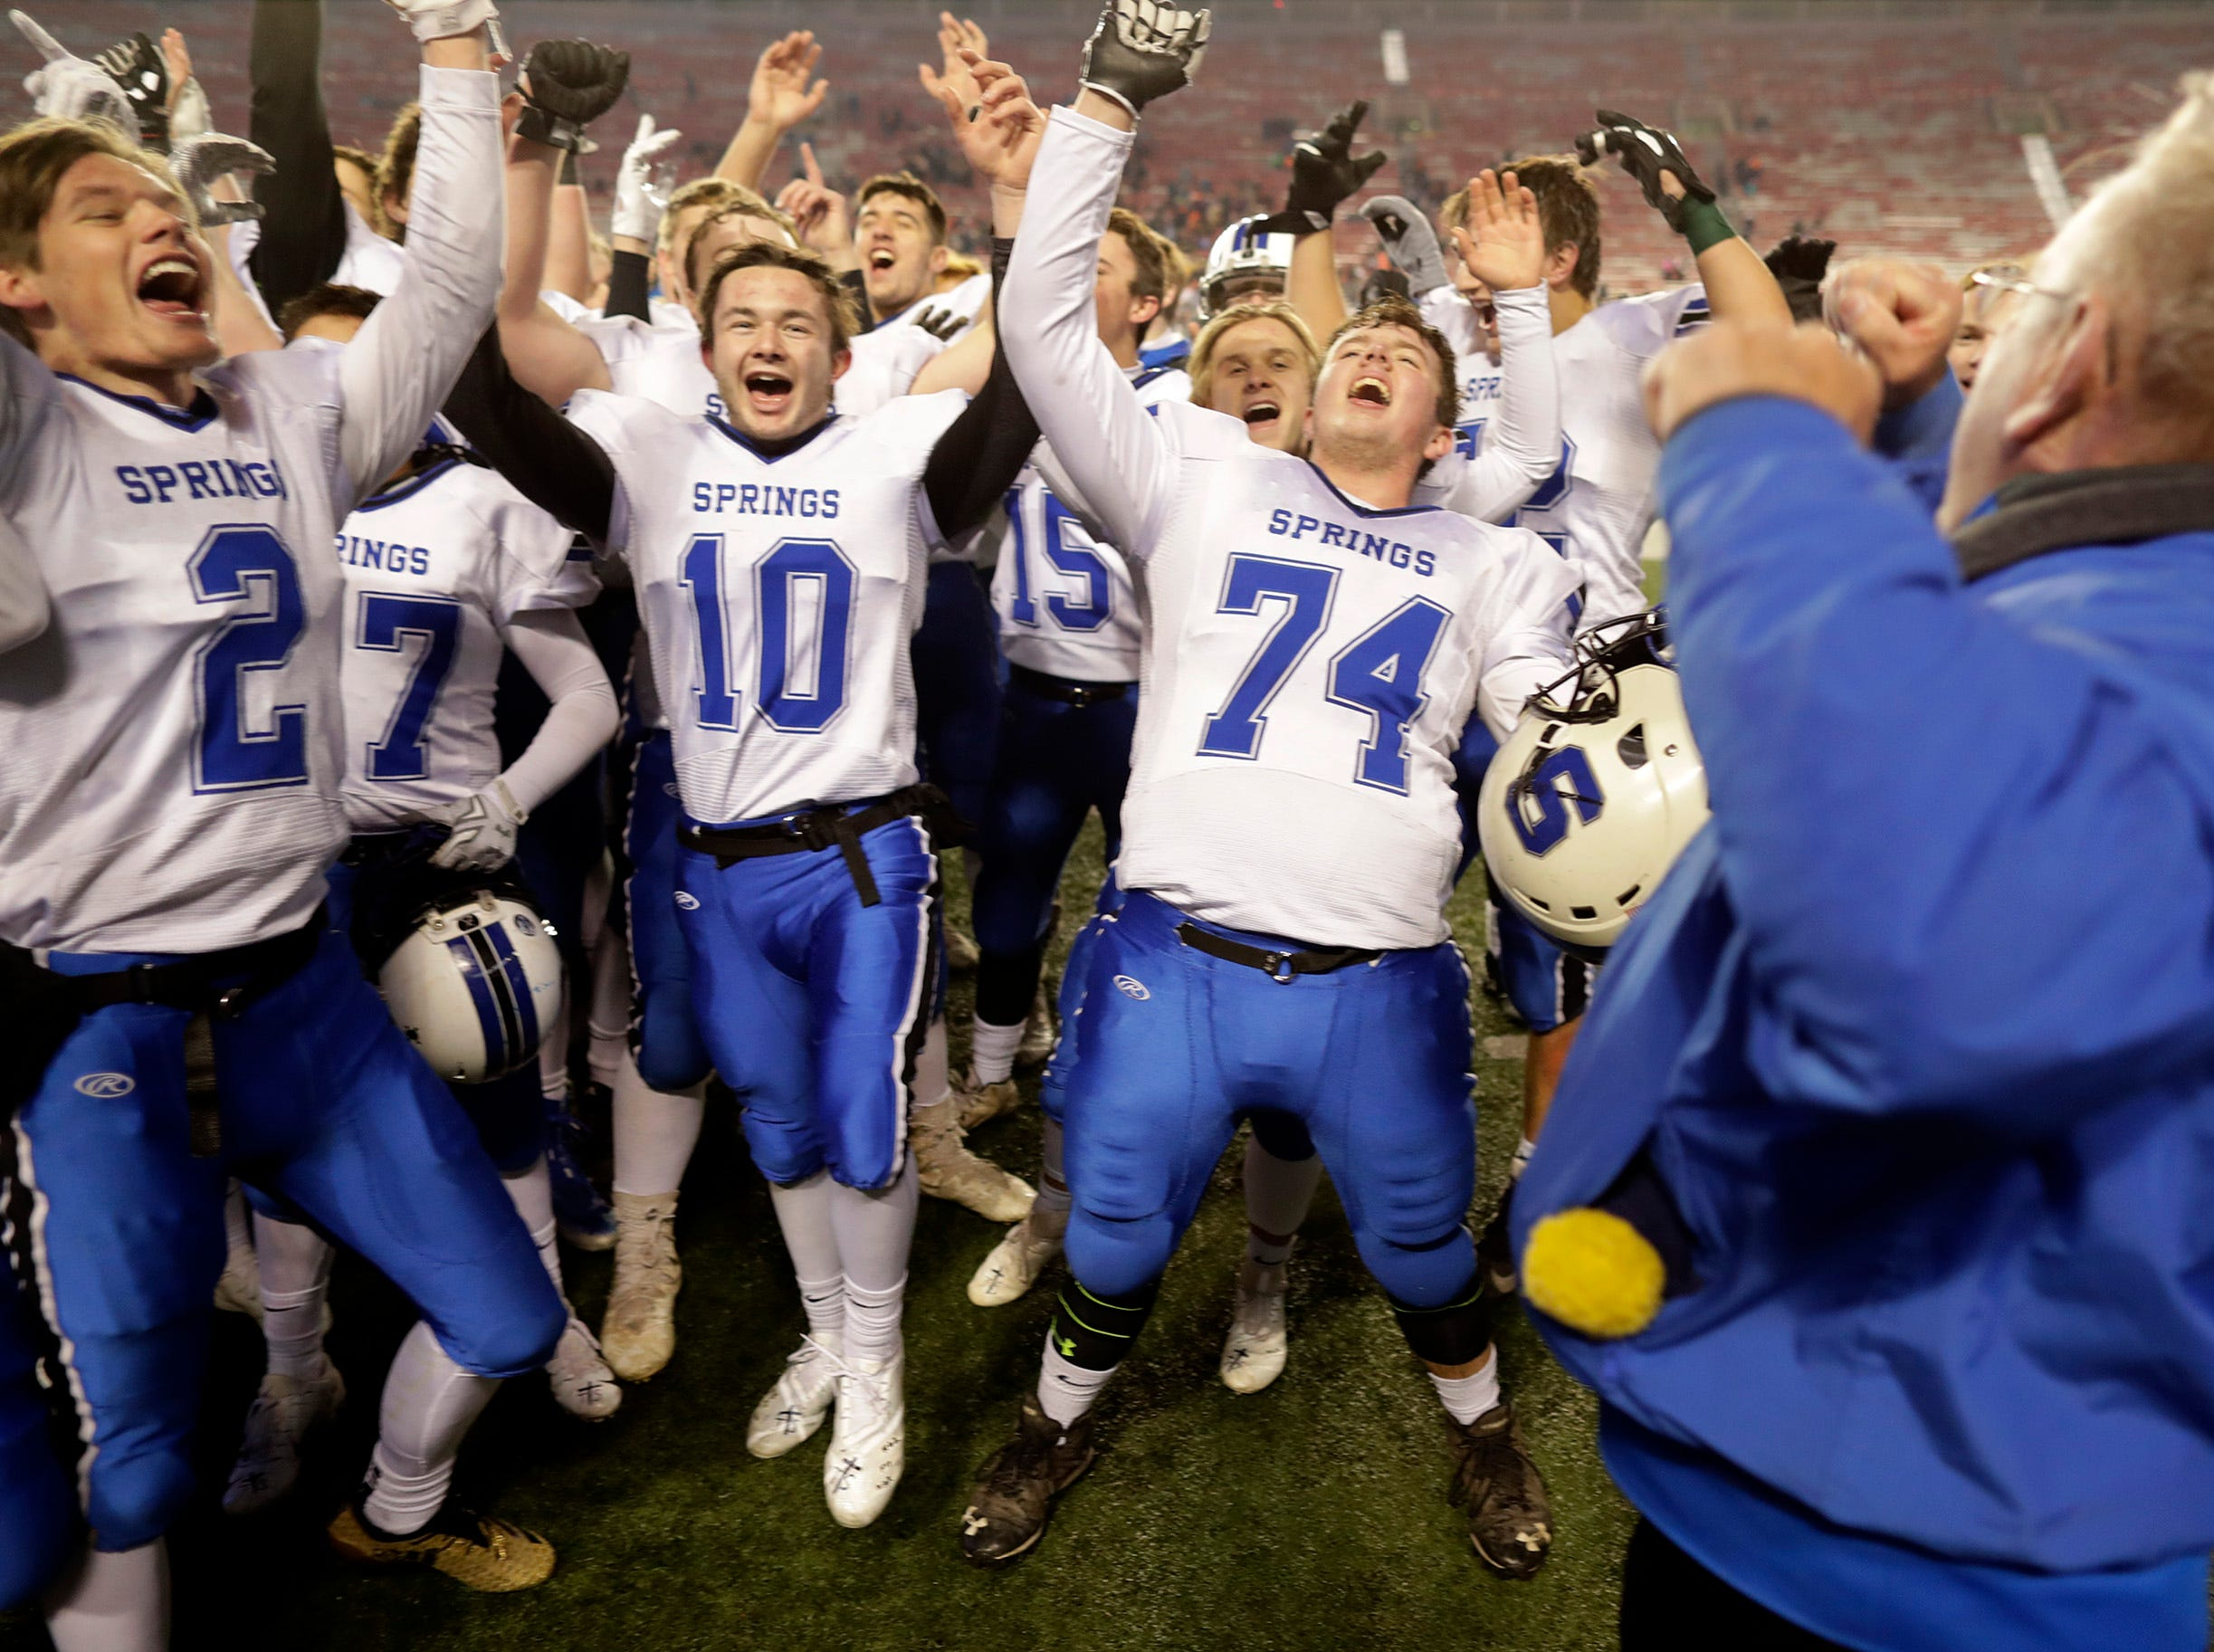 St. Mary's Springs Academy playerscelebrate the Ledgers' victory over Stratford High School during the WIAA Division  5 state championship football game on Thursday, November 15, 2018, at Camp Randall in Madison, Wis.